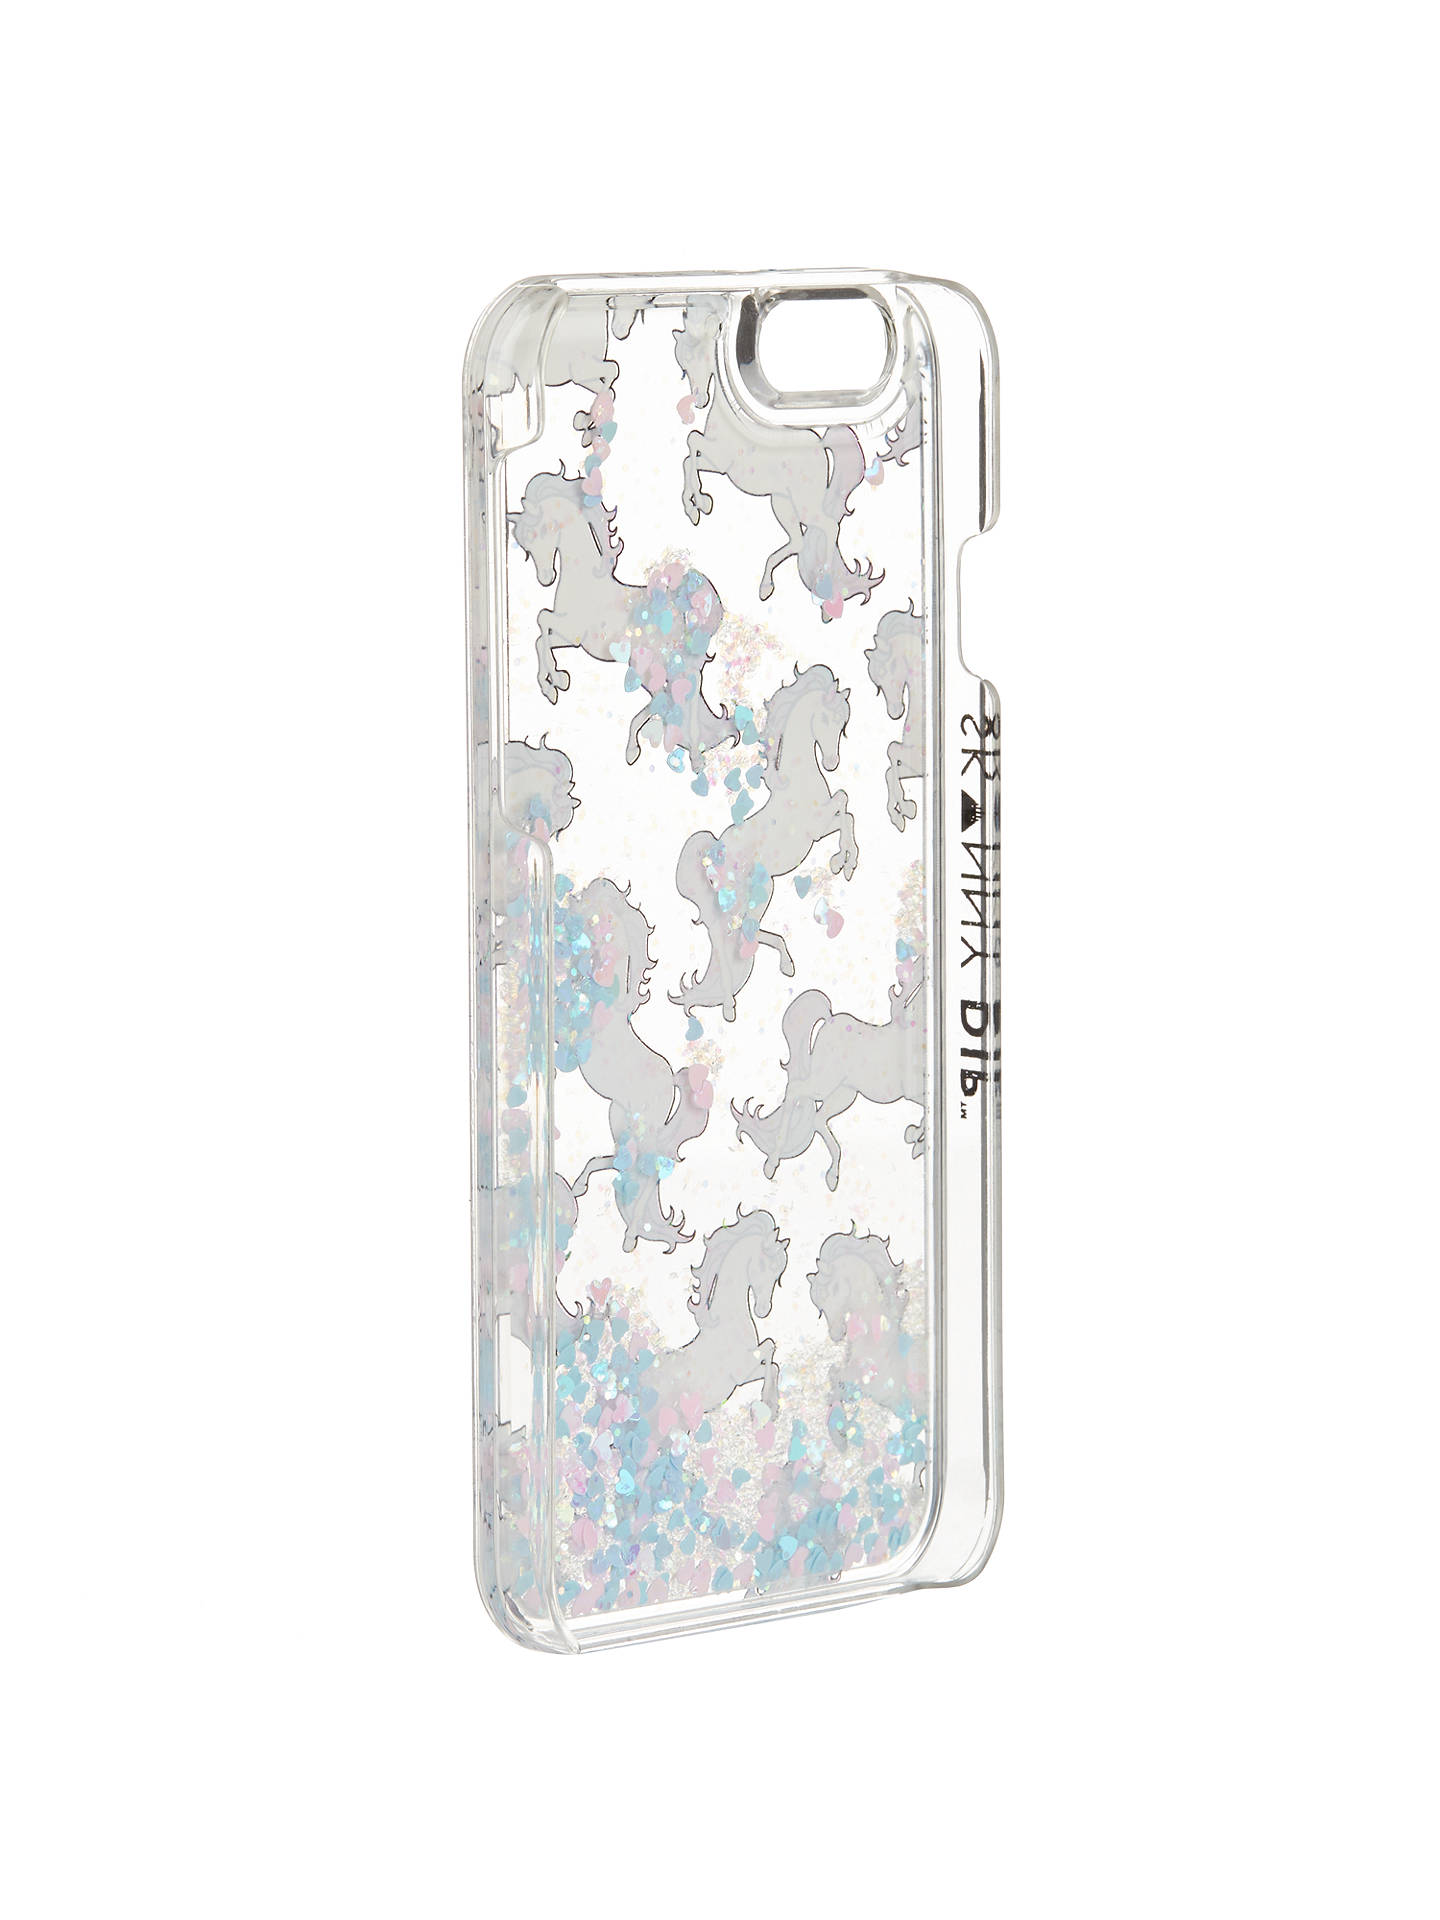 Buy Skinnydip Glitter Unicorn iPhone 6 Case, Multi Online at johnlewis.com